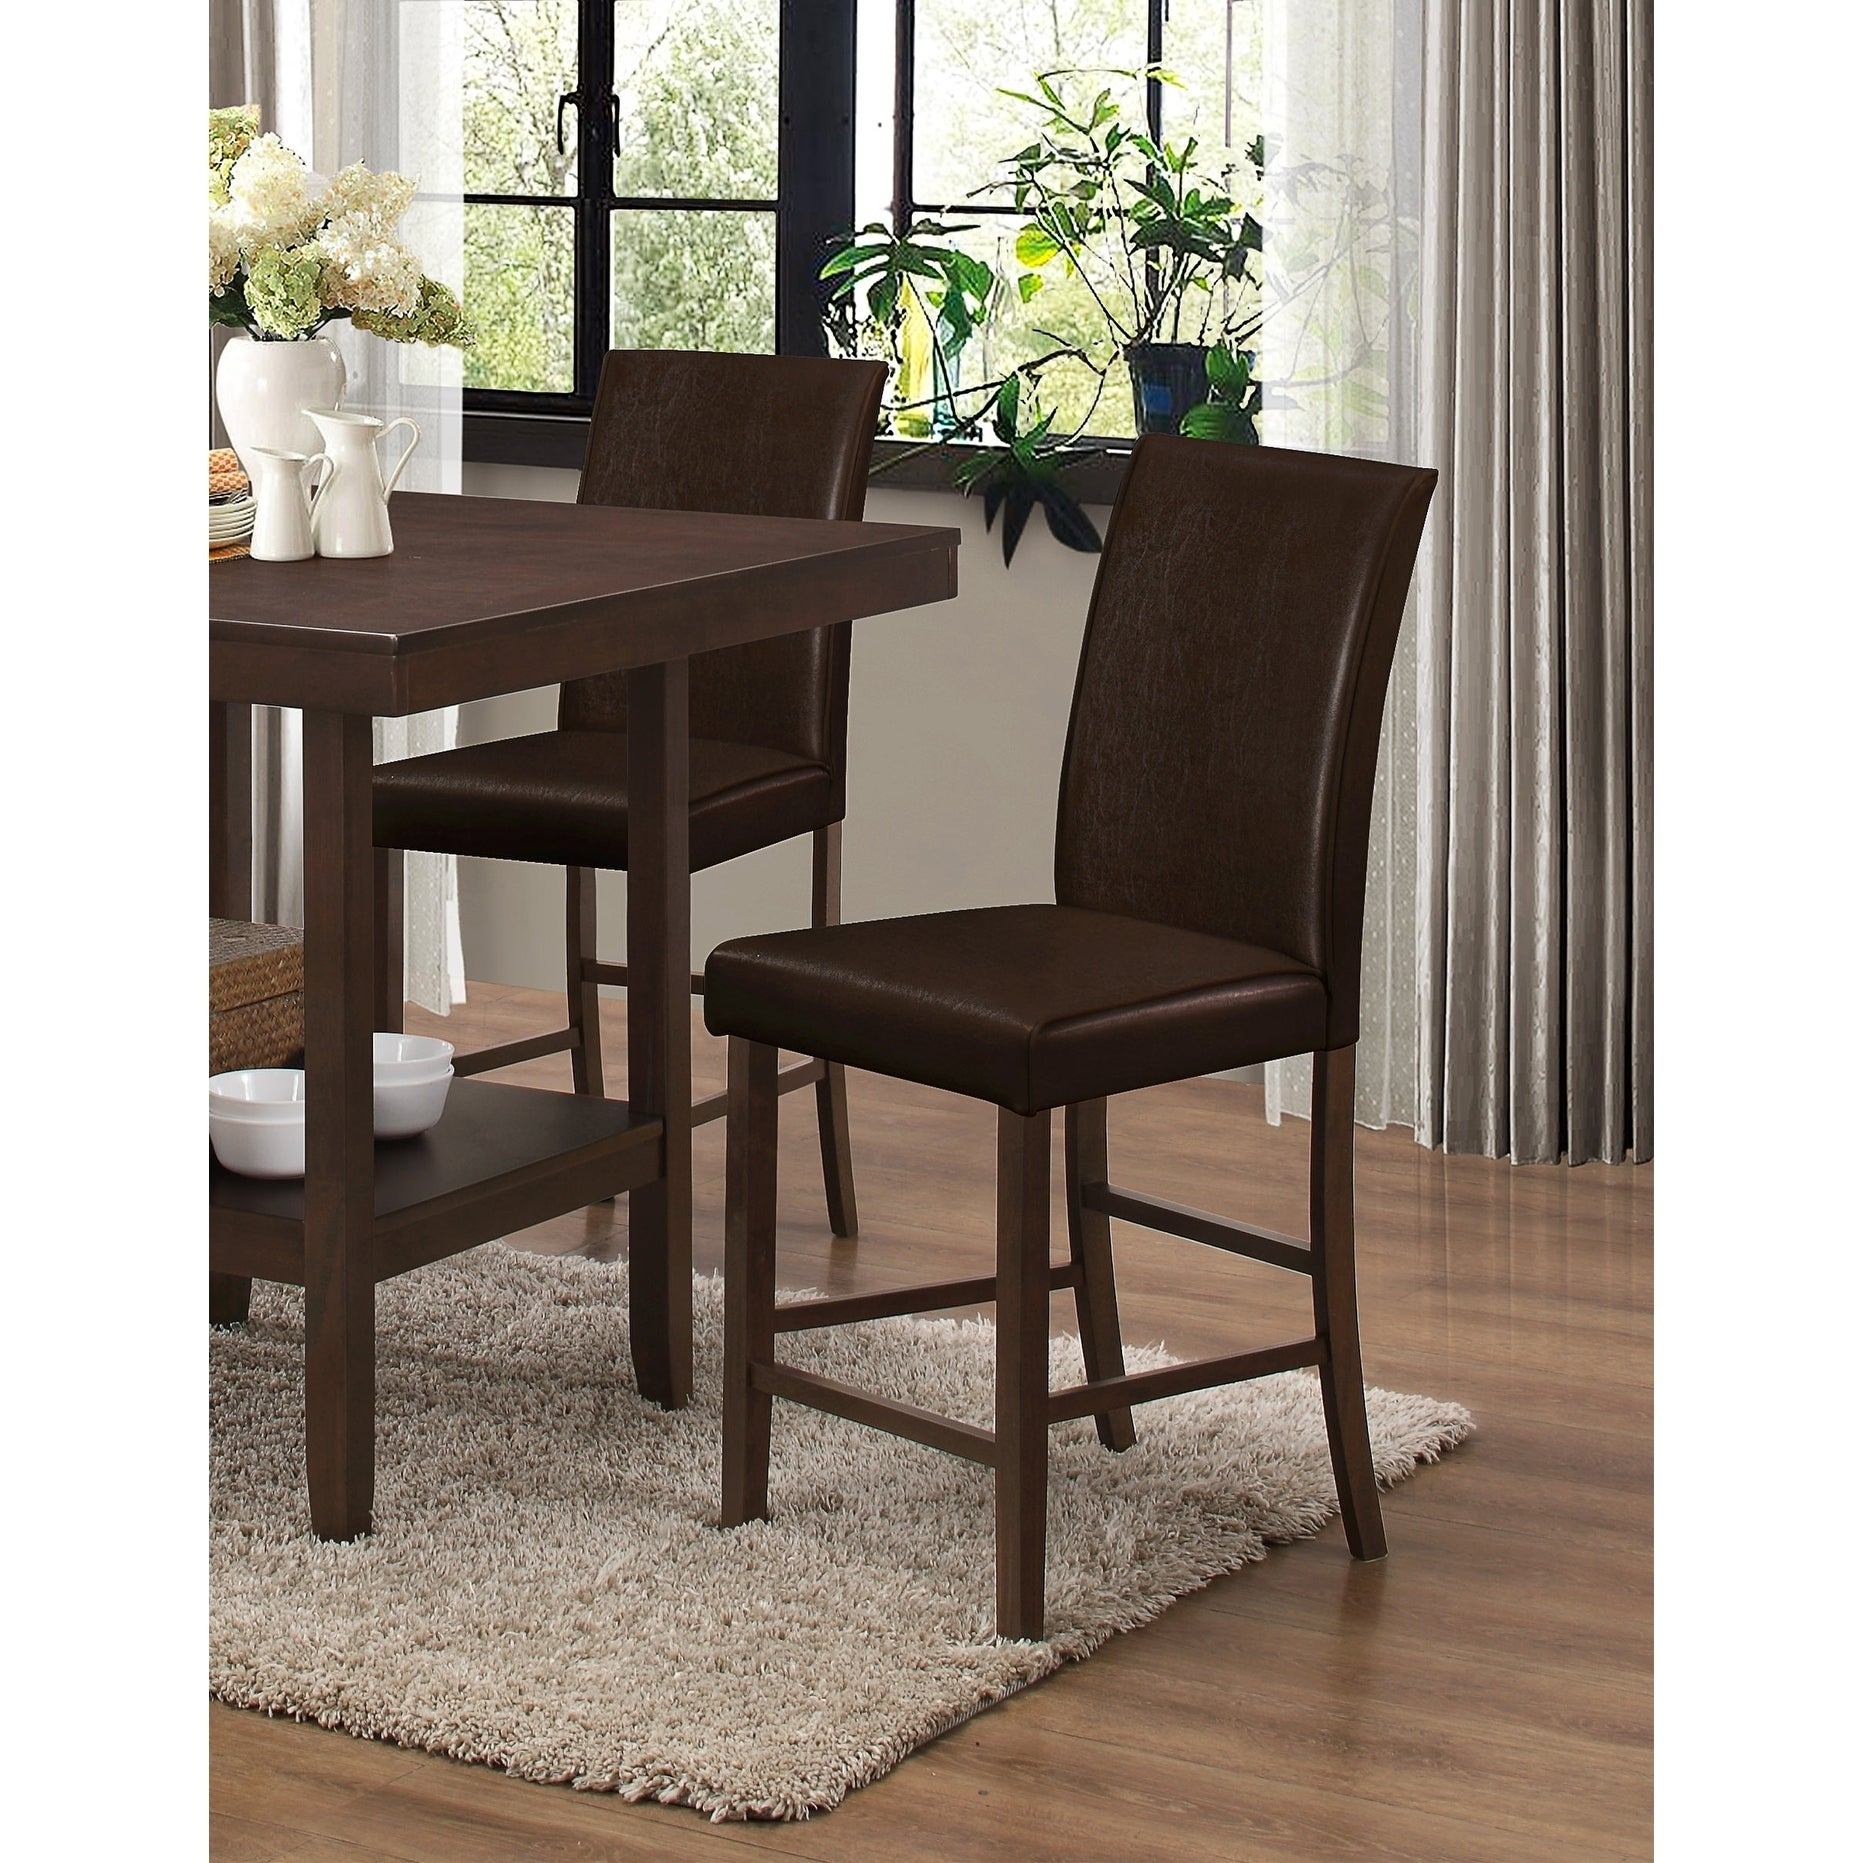 Merveilleux Best Master Furniture Espresso Counter Height Chair (Set Of 2)   Free  Shipping Today   Overstock.com   26517561